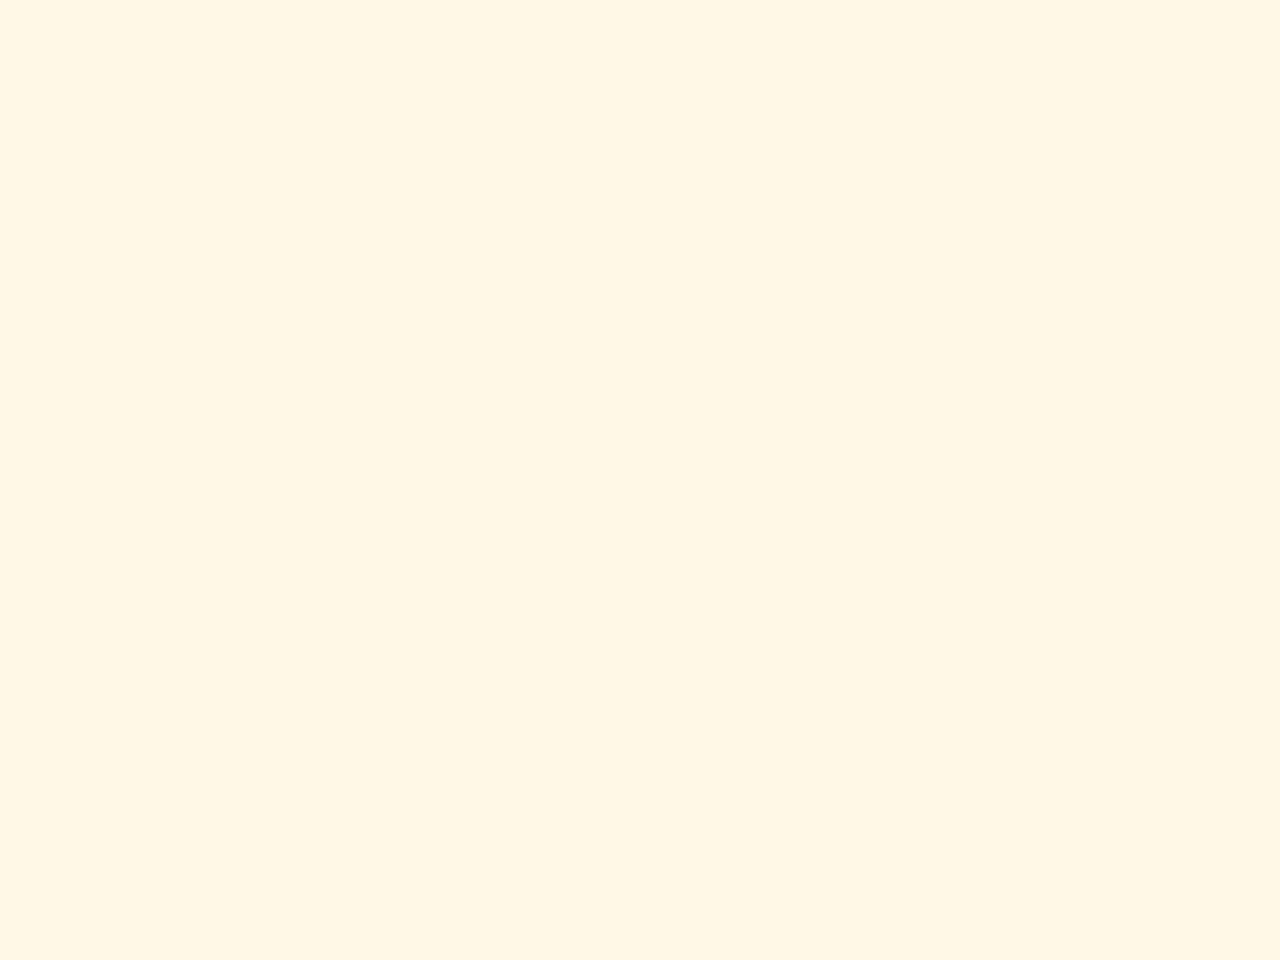 1280x960 Cosmic Latte Solid Color Background